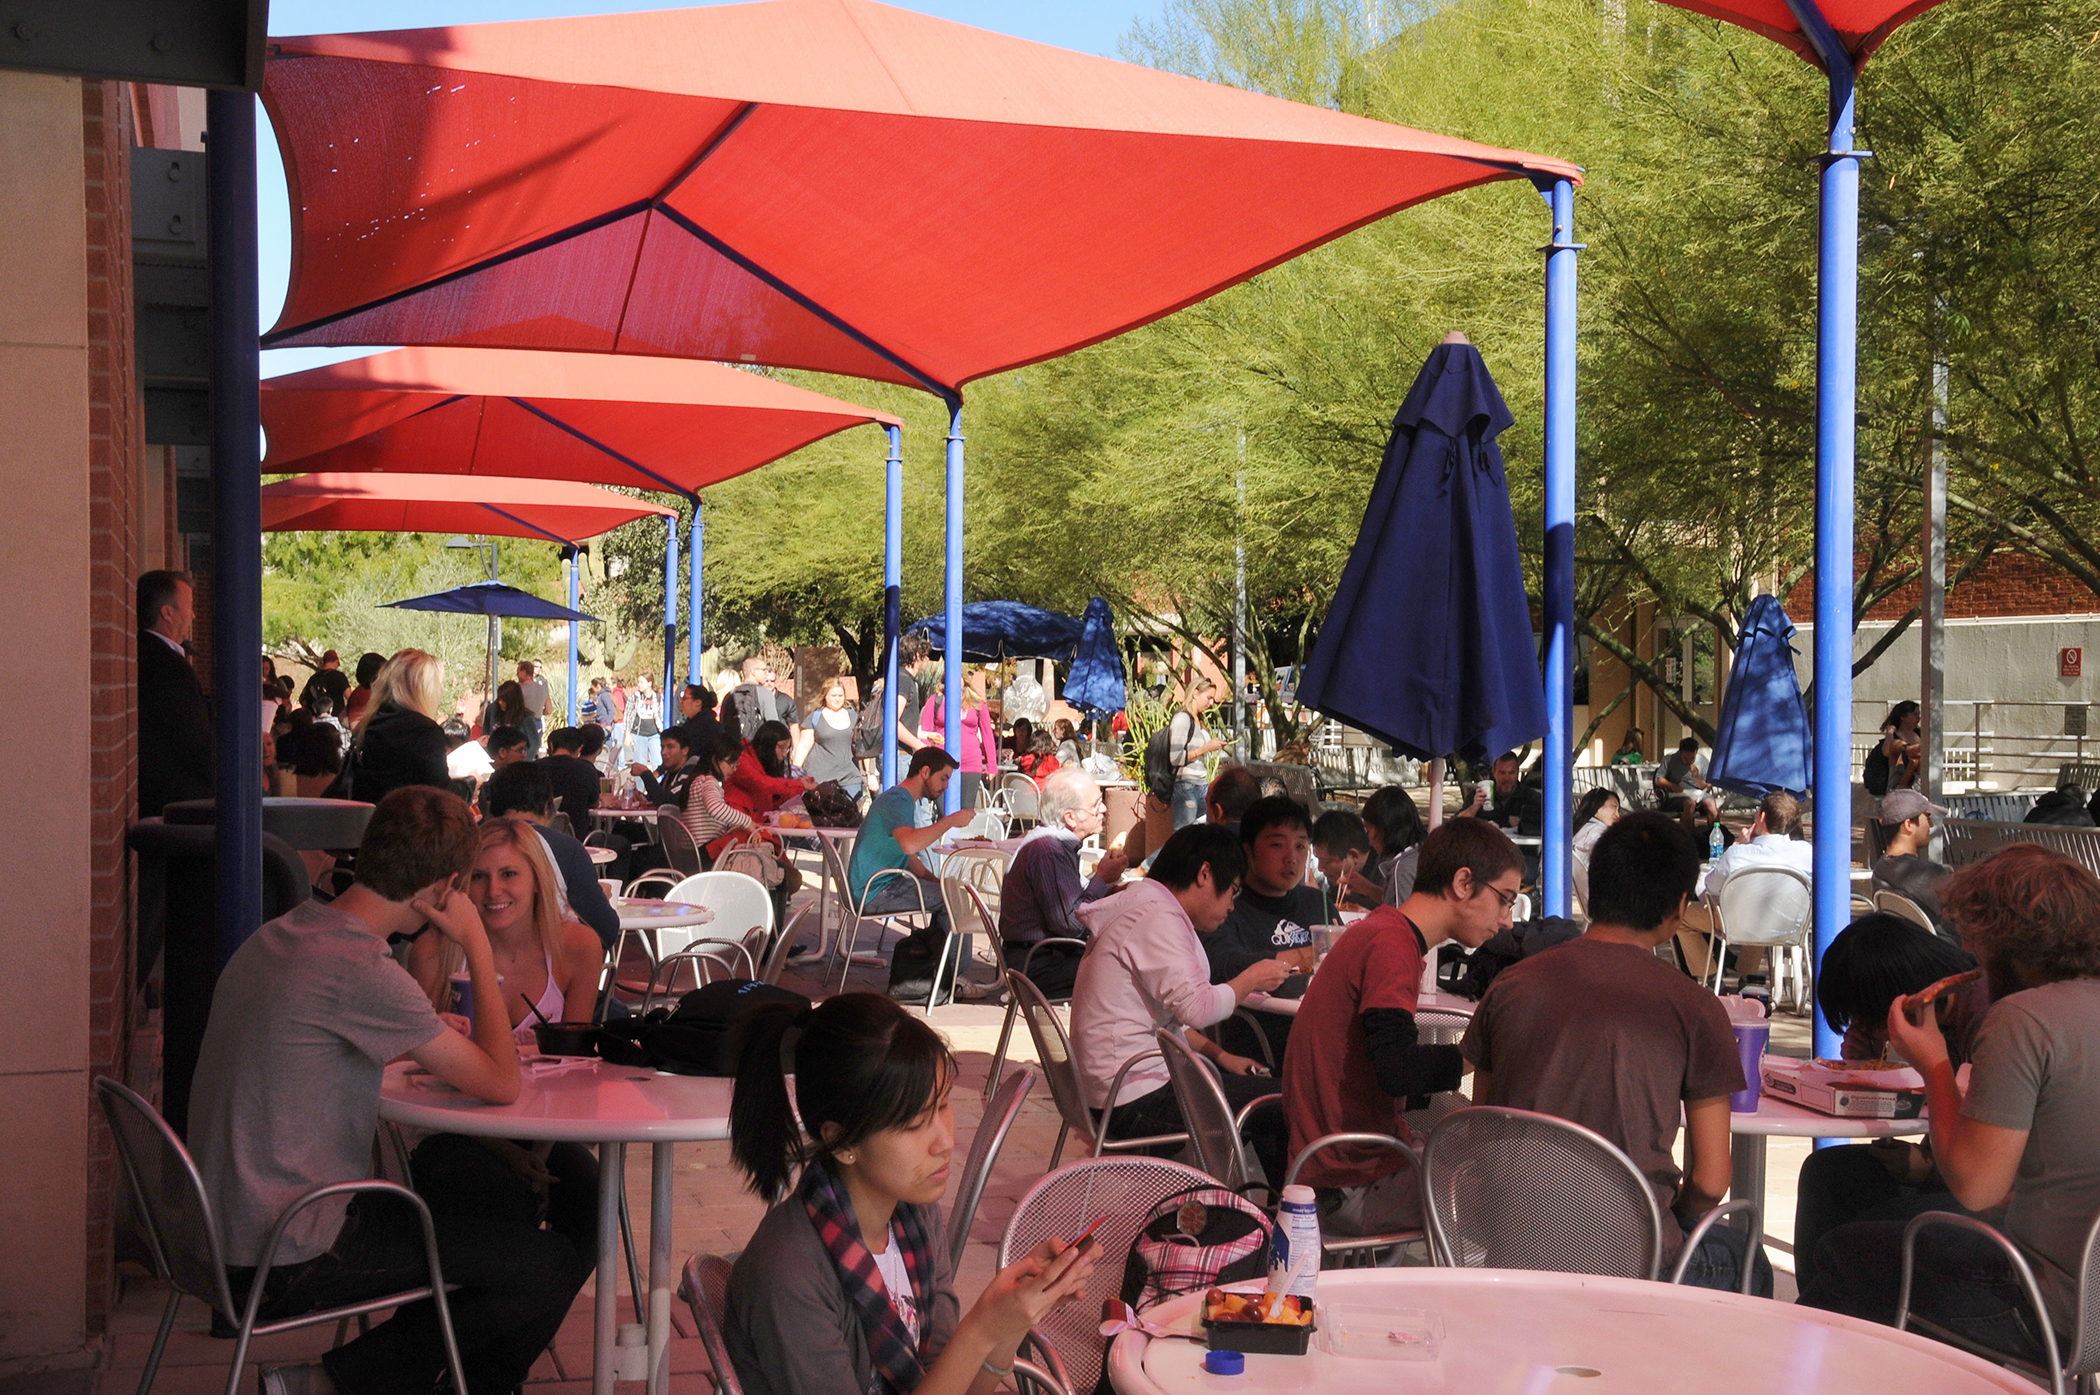 College students eating lunch at the University of Arizona in Tucson